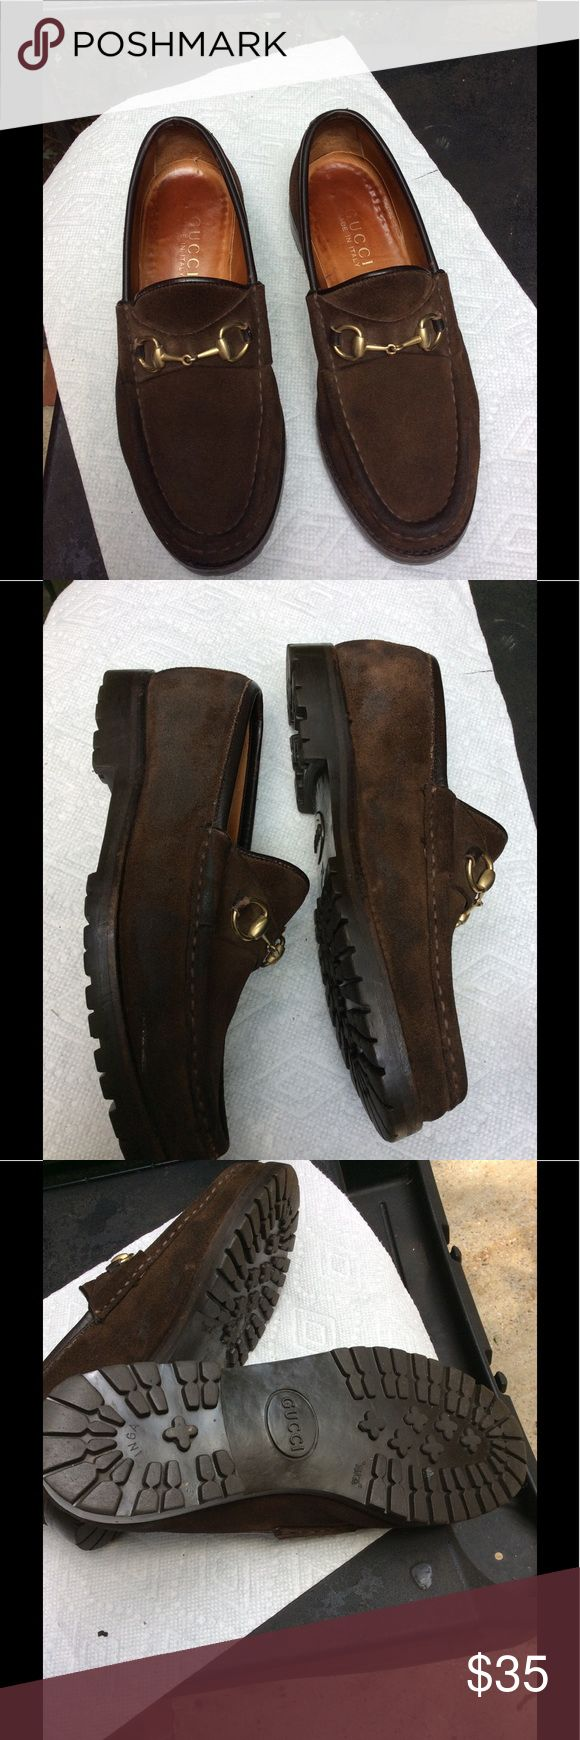 Authentic Gucci brown loafers, could use love sz6 Suede can use a good suede brush but they're too small now & don't want to spend the time. Selling cheap! Size 6 . Soles in perfect condition, still have lots of wear in them. Gucci Shoes Flats & Loafers